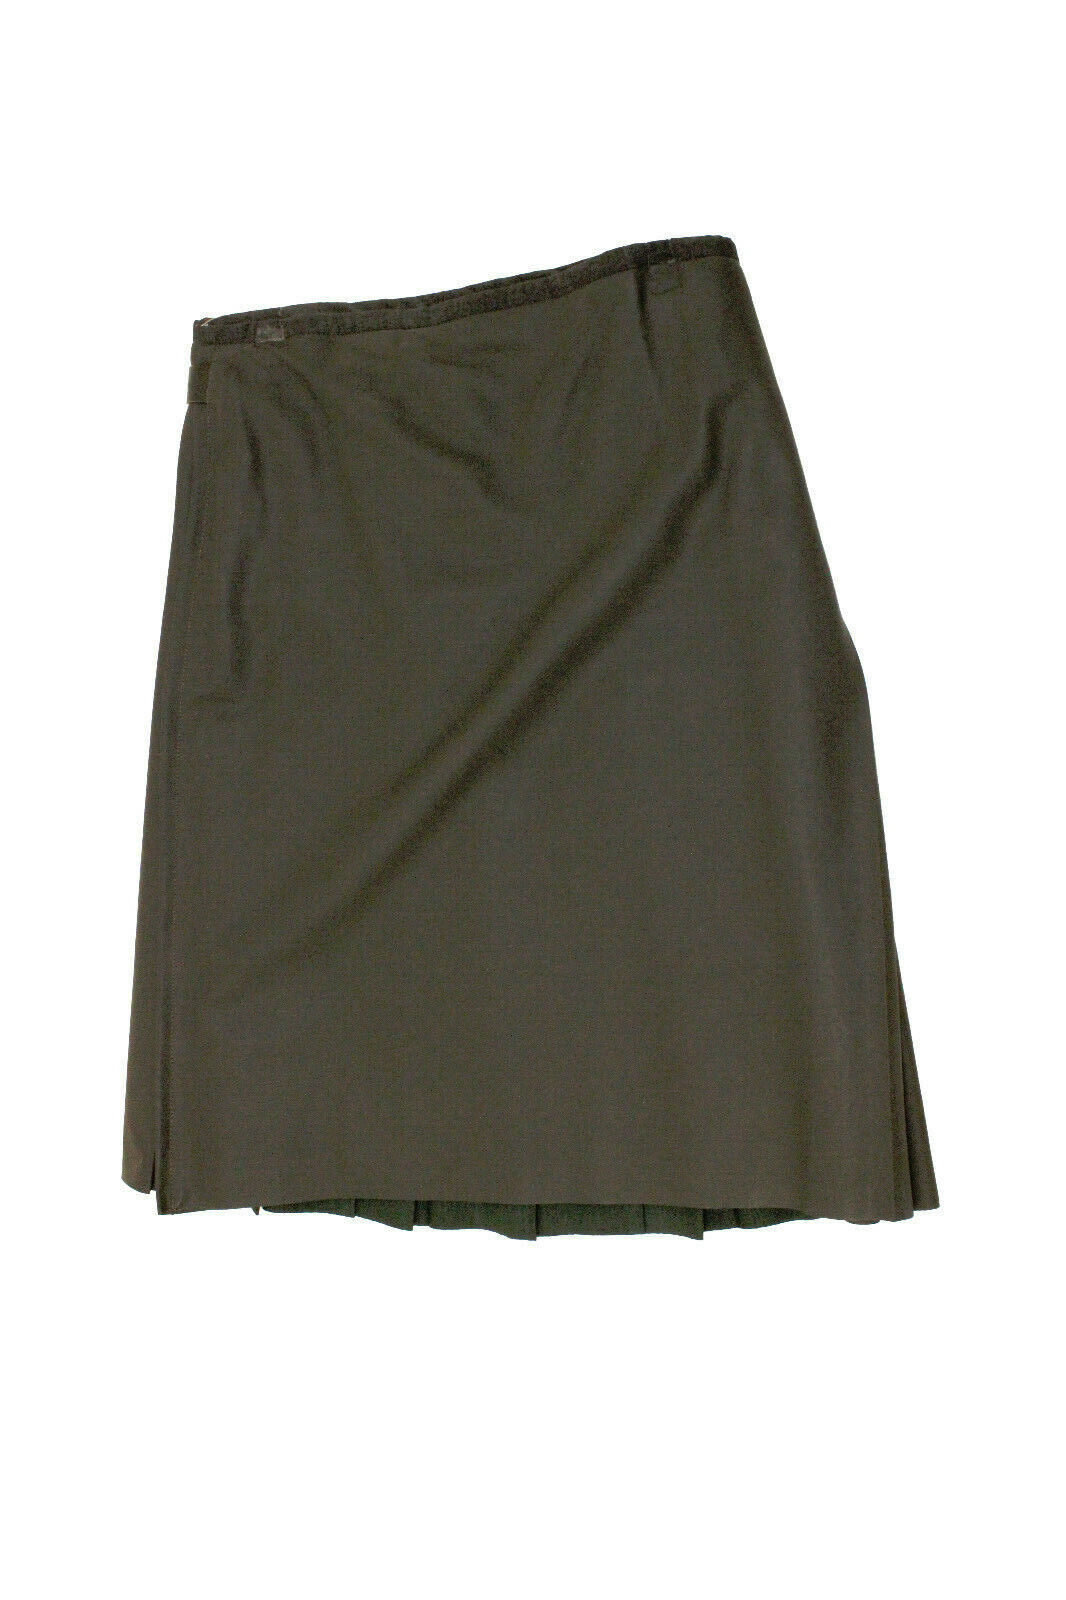 Casual PU Leather Kilts - clear out at - limited sizes